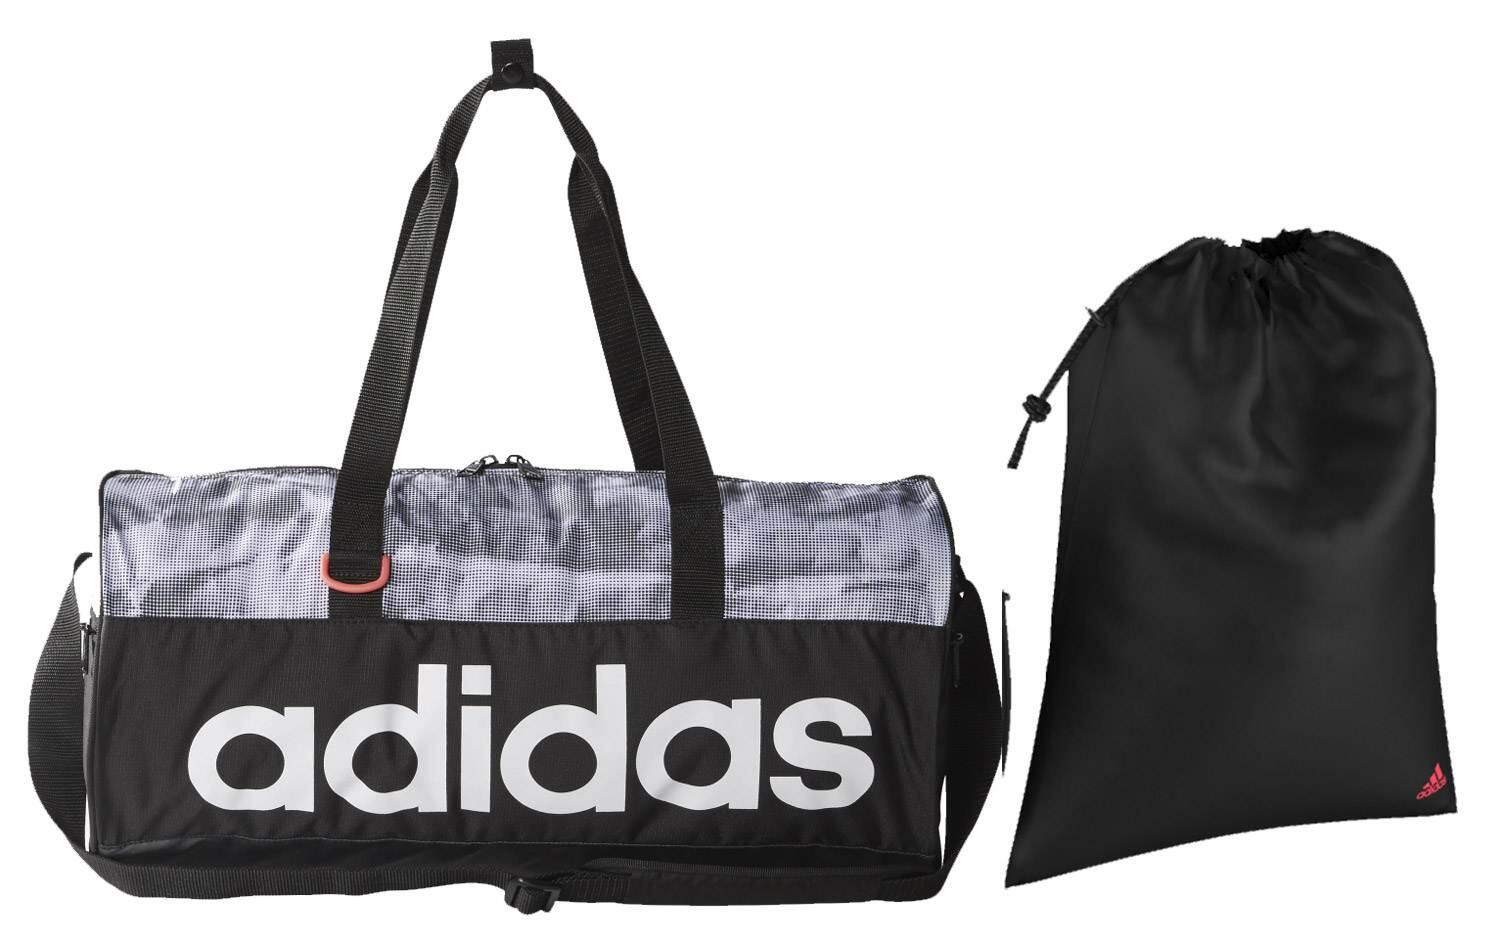 adidas-performance-teambag-s-sporttasche-farbe-black-white-shock-red-s16-